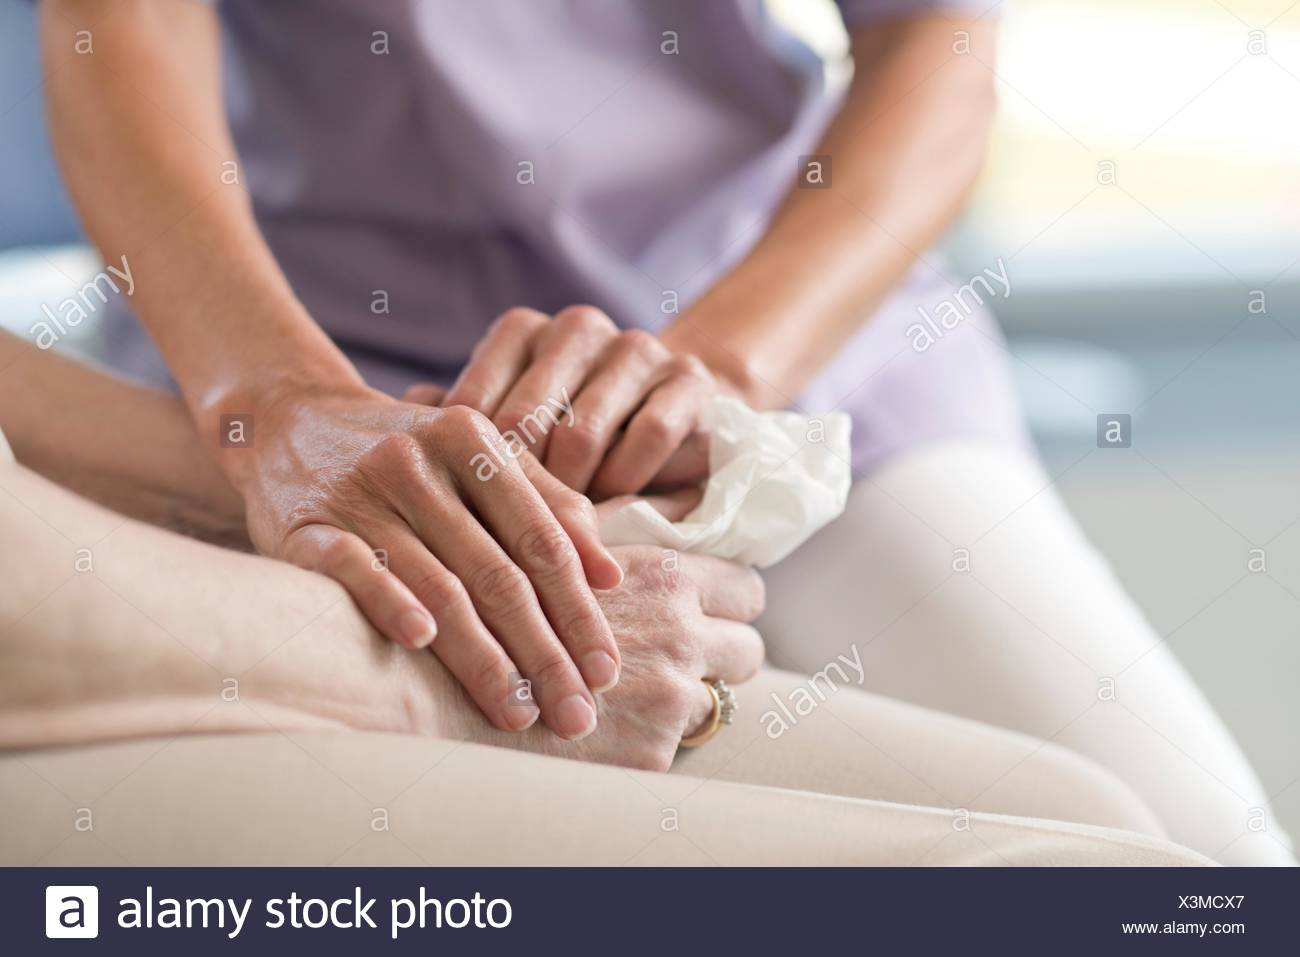 Care worker holding senior woman's hands. - Stock Image